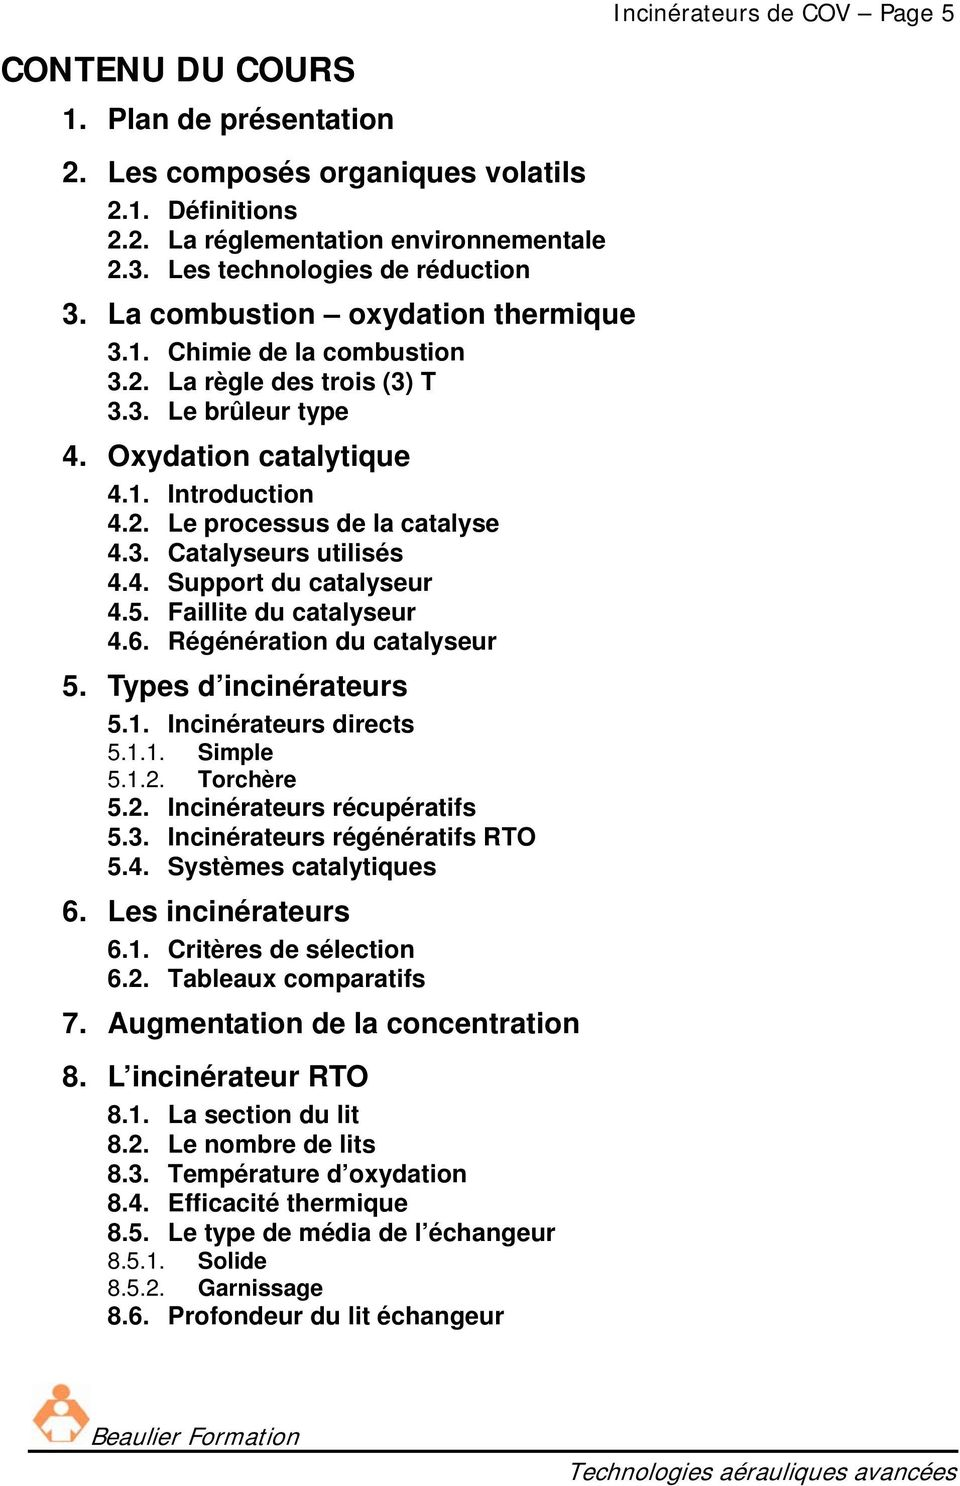 4. Support du catalyseur 4.5. Faillite du catalyseur 4.6. Régénération du catalyseur 5. Types d incinérateurs 5.1. Incinérateurs directs 5.1.1. Simple 5.1.2. Torchère 5.2. Incinérateurs récupératifs 5.